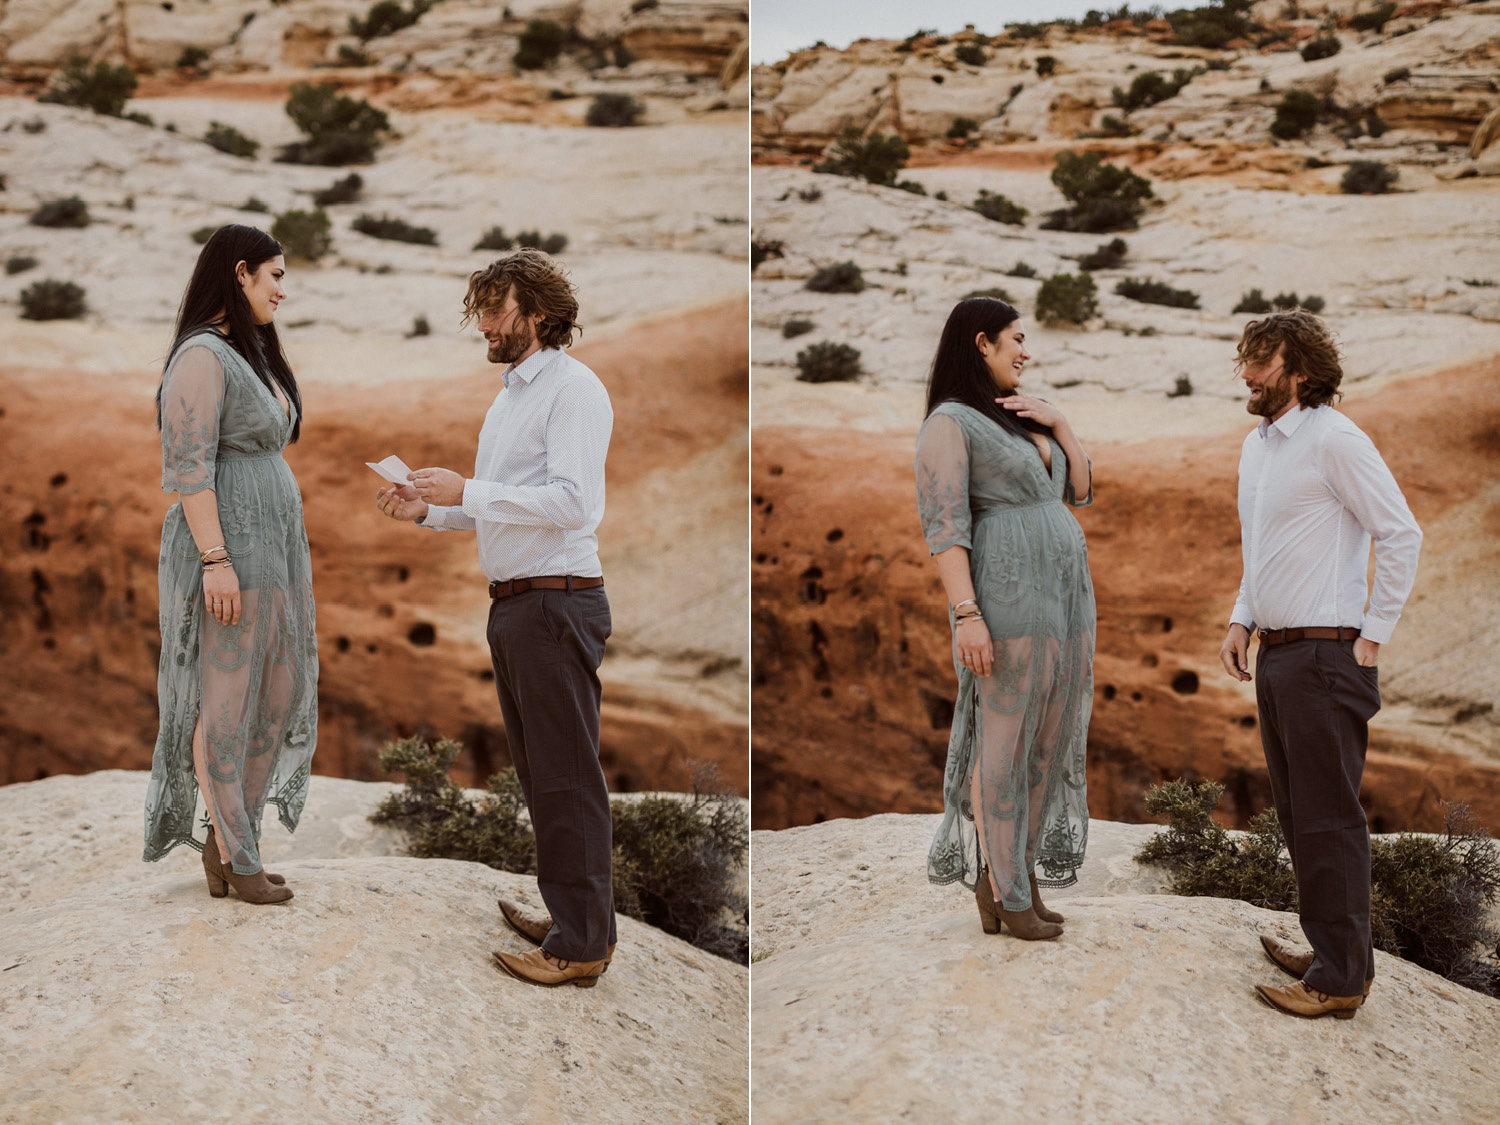 capitol-reef-national-park-engagements-50.jpg